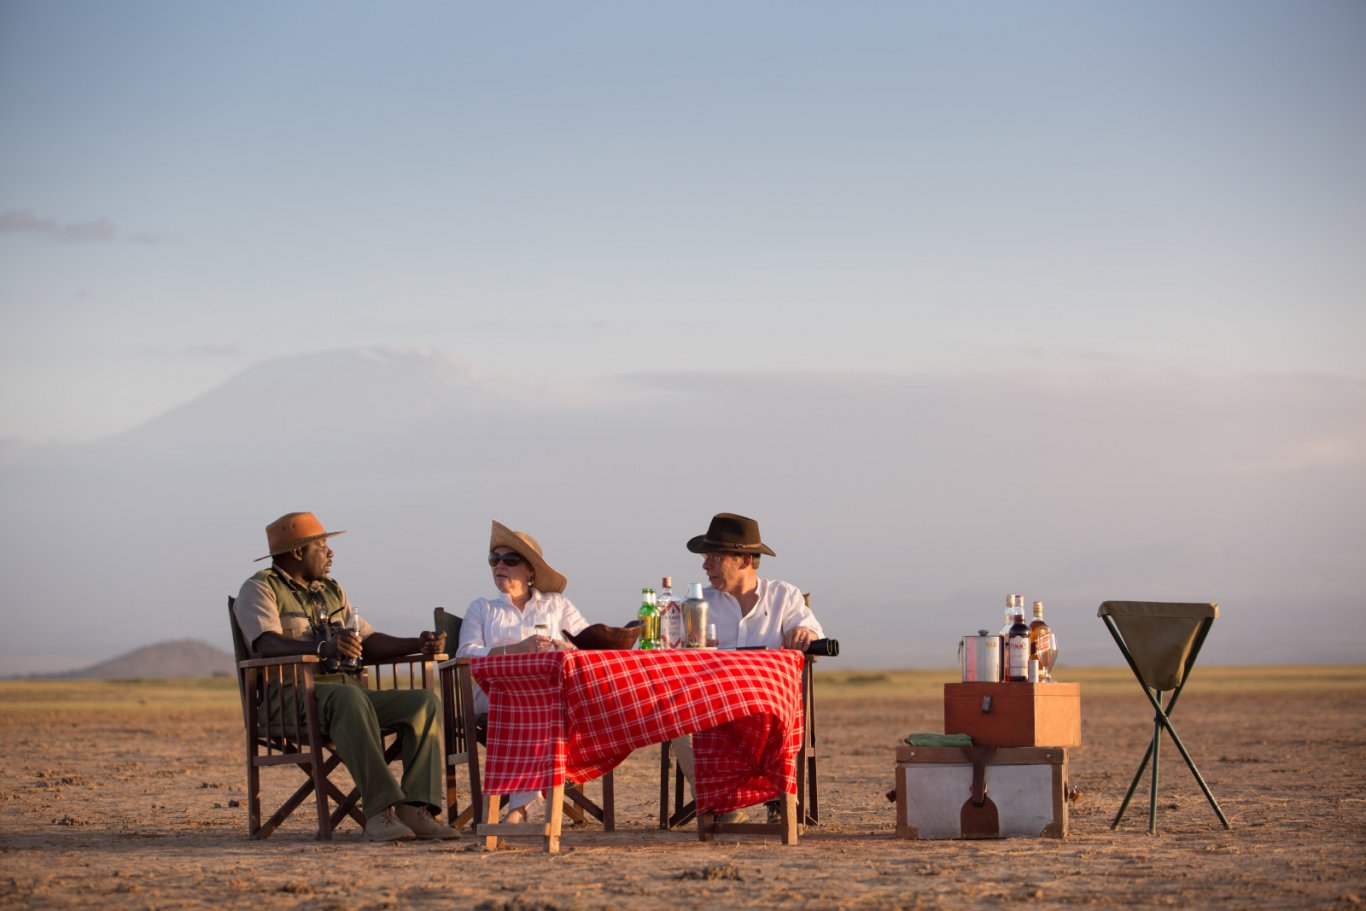 9 DAY TANZANIA LUXURY CULTURAL TOURISM SAFARI